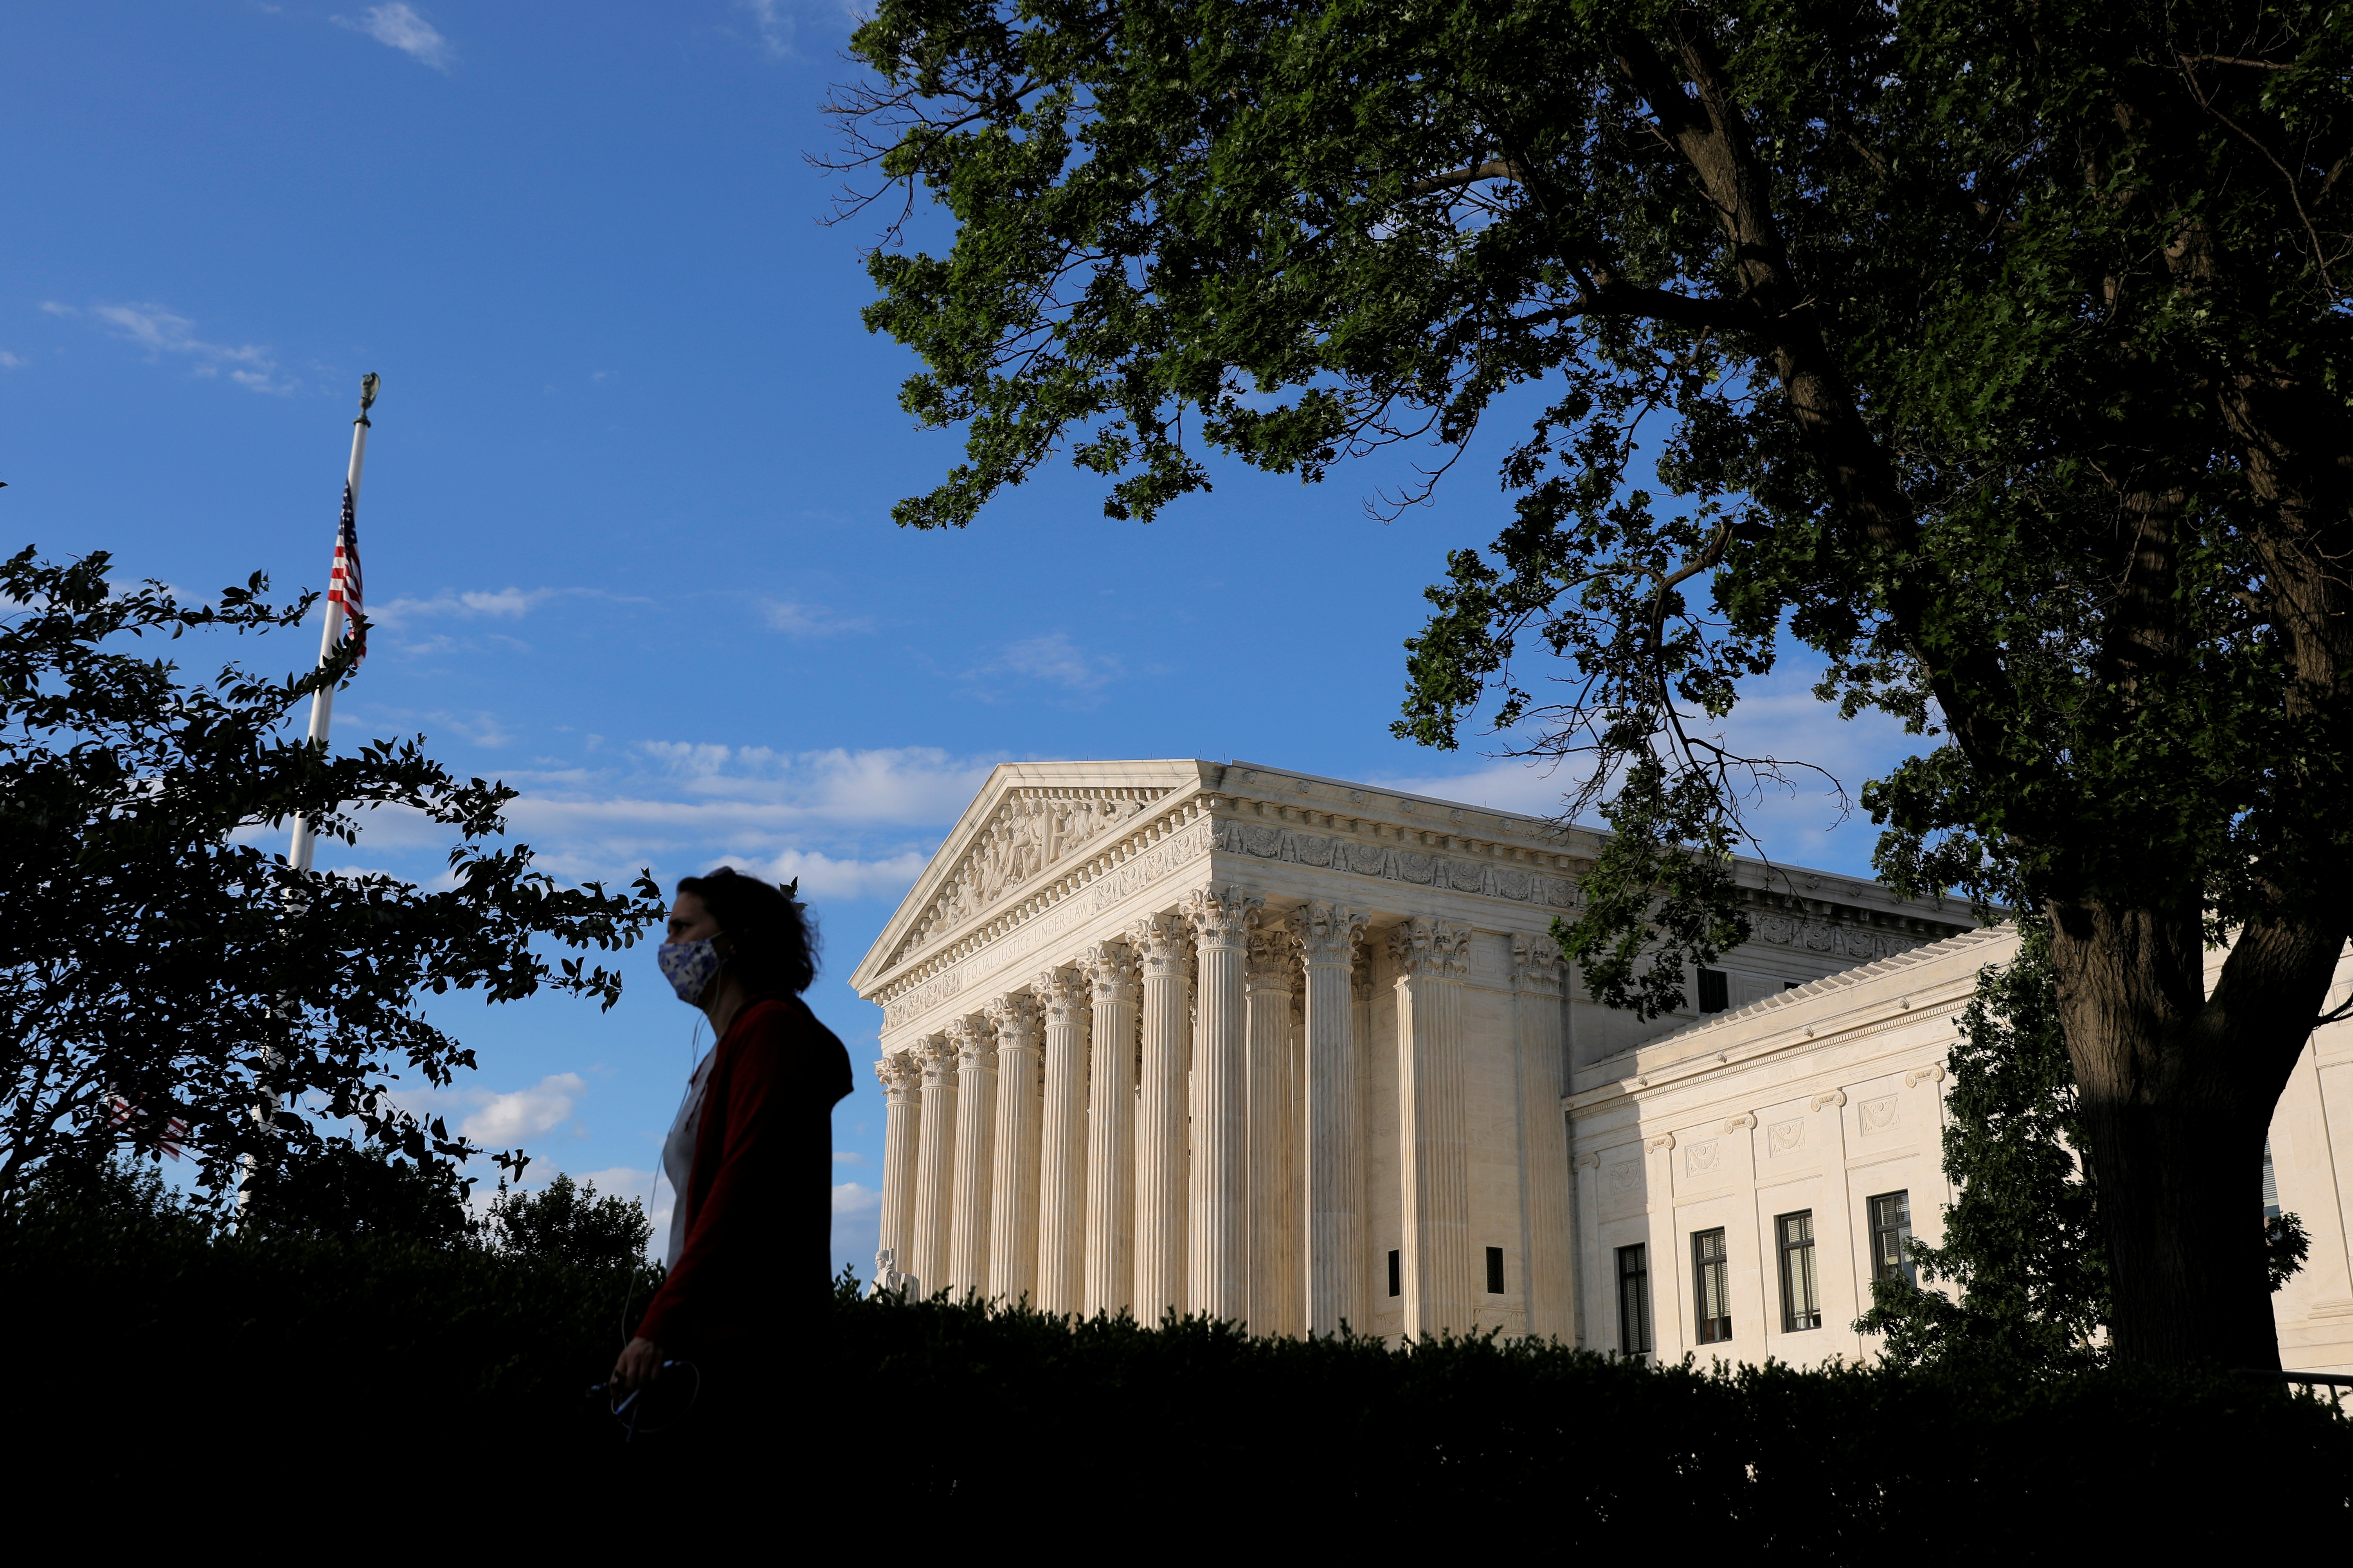 A person in a mask walks past the United States Supreme Court Building in Washington, D.C., U.S., May 13, 2021. REUTERS/Andrew Kelly/File Photo